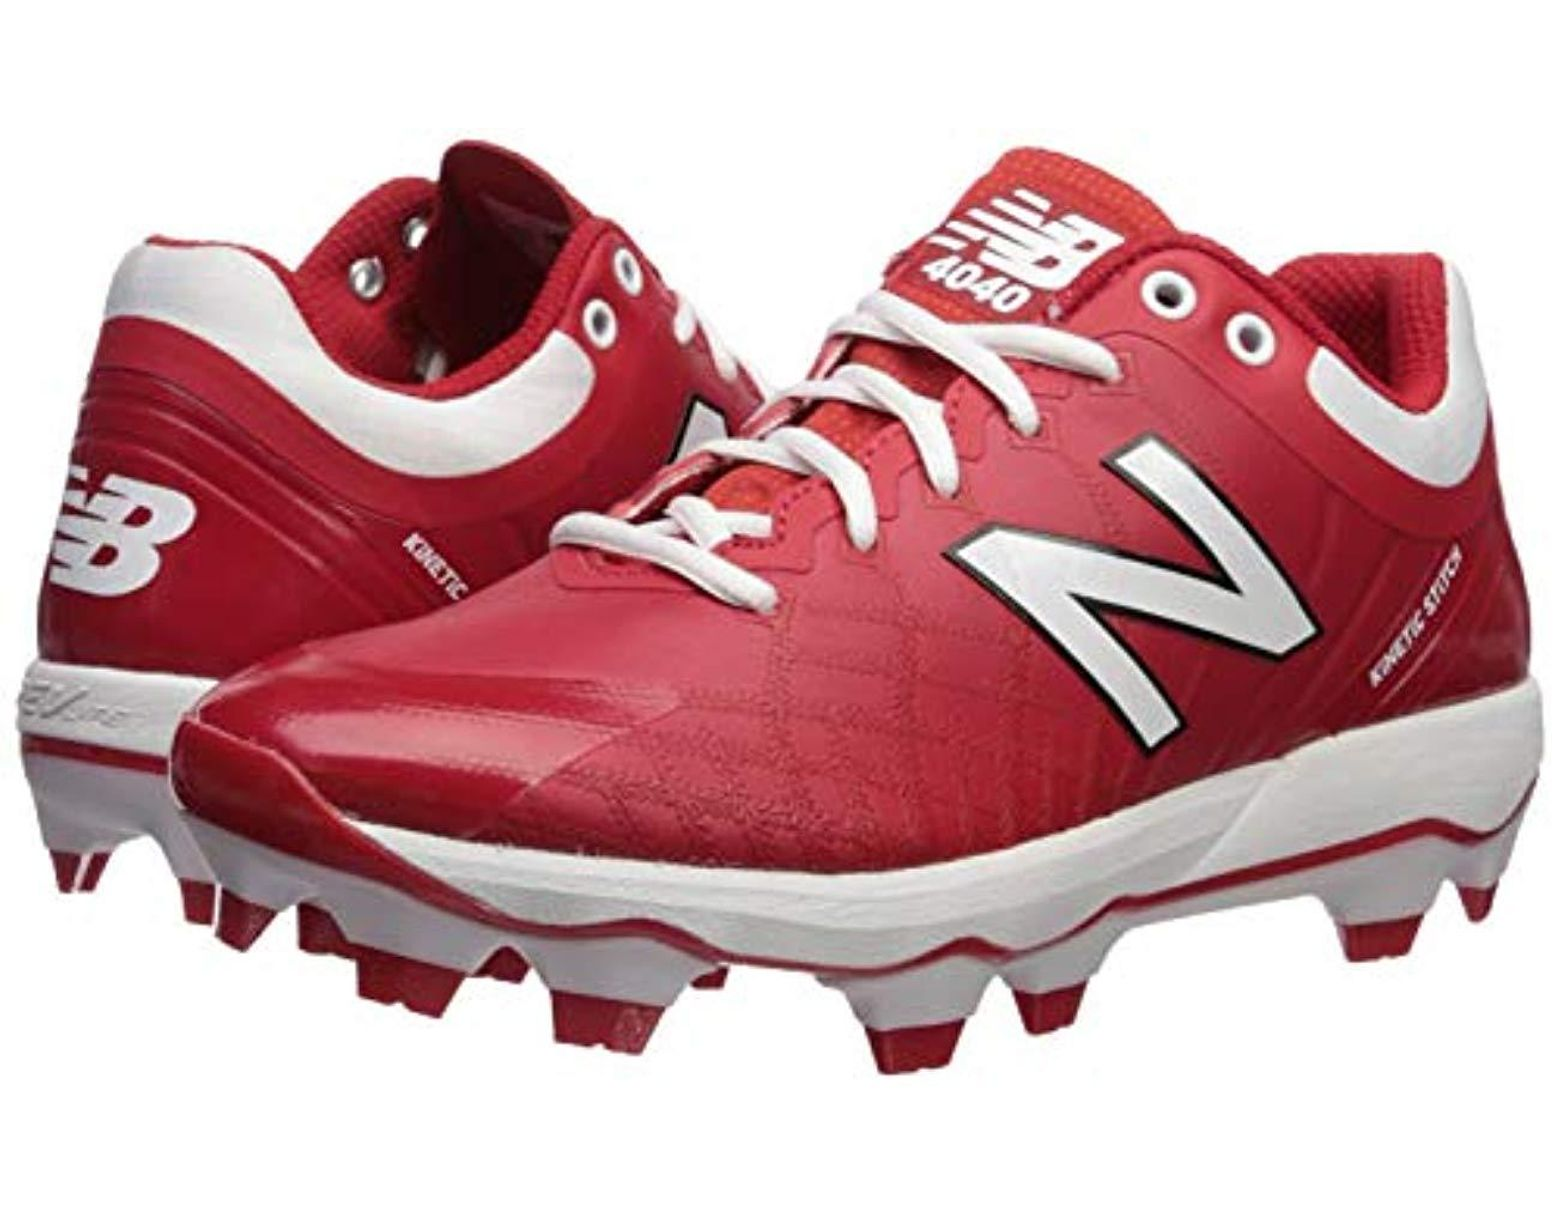 08610bb582 Men's Red 4040v5 S Tpu Molded Cleats